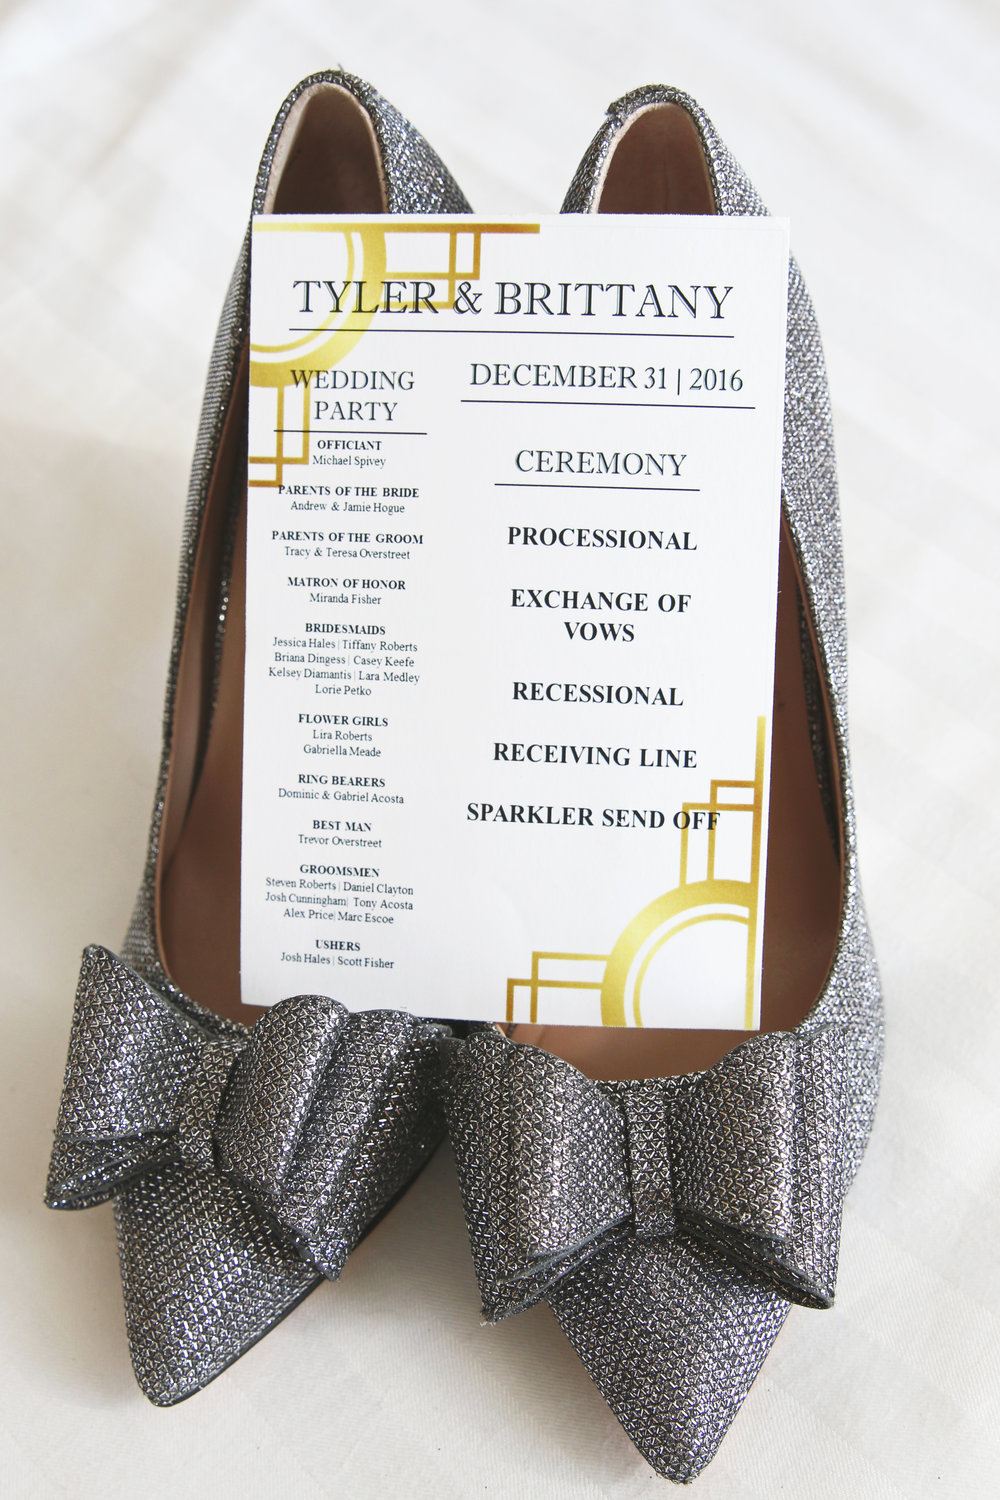 The wedding programs sported a clean Art Deco design that paired very well with the bride's sparkly shoes perfect for a New Years affair!